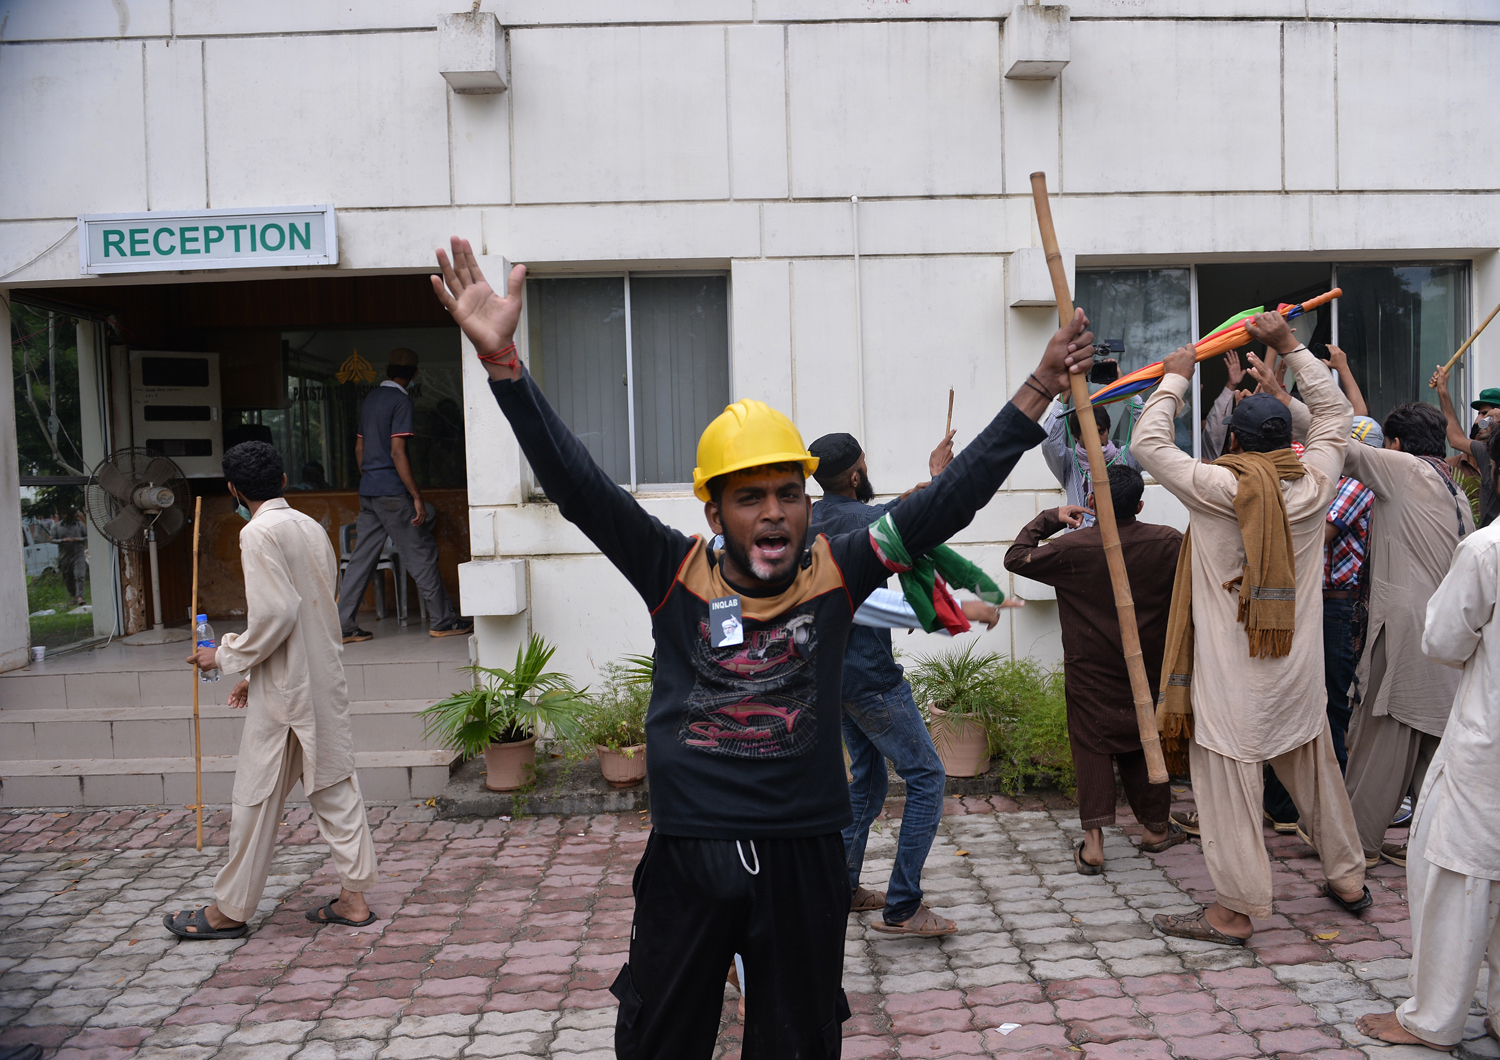 Pakistani supporters of politician-cleric Muhammad Tahir ul-Qadri and cricket turned politician Imran Khan shout antigovernment slogans after storming the headquarters of the state-owned Pakistani Television in Islamabad on Sept. 1, 2014